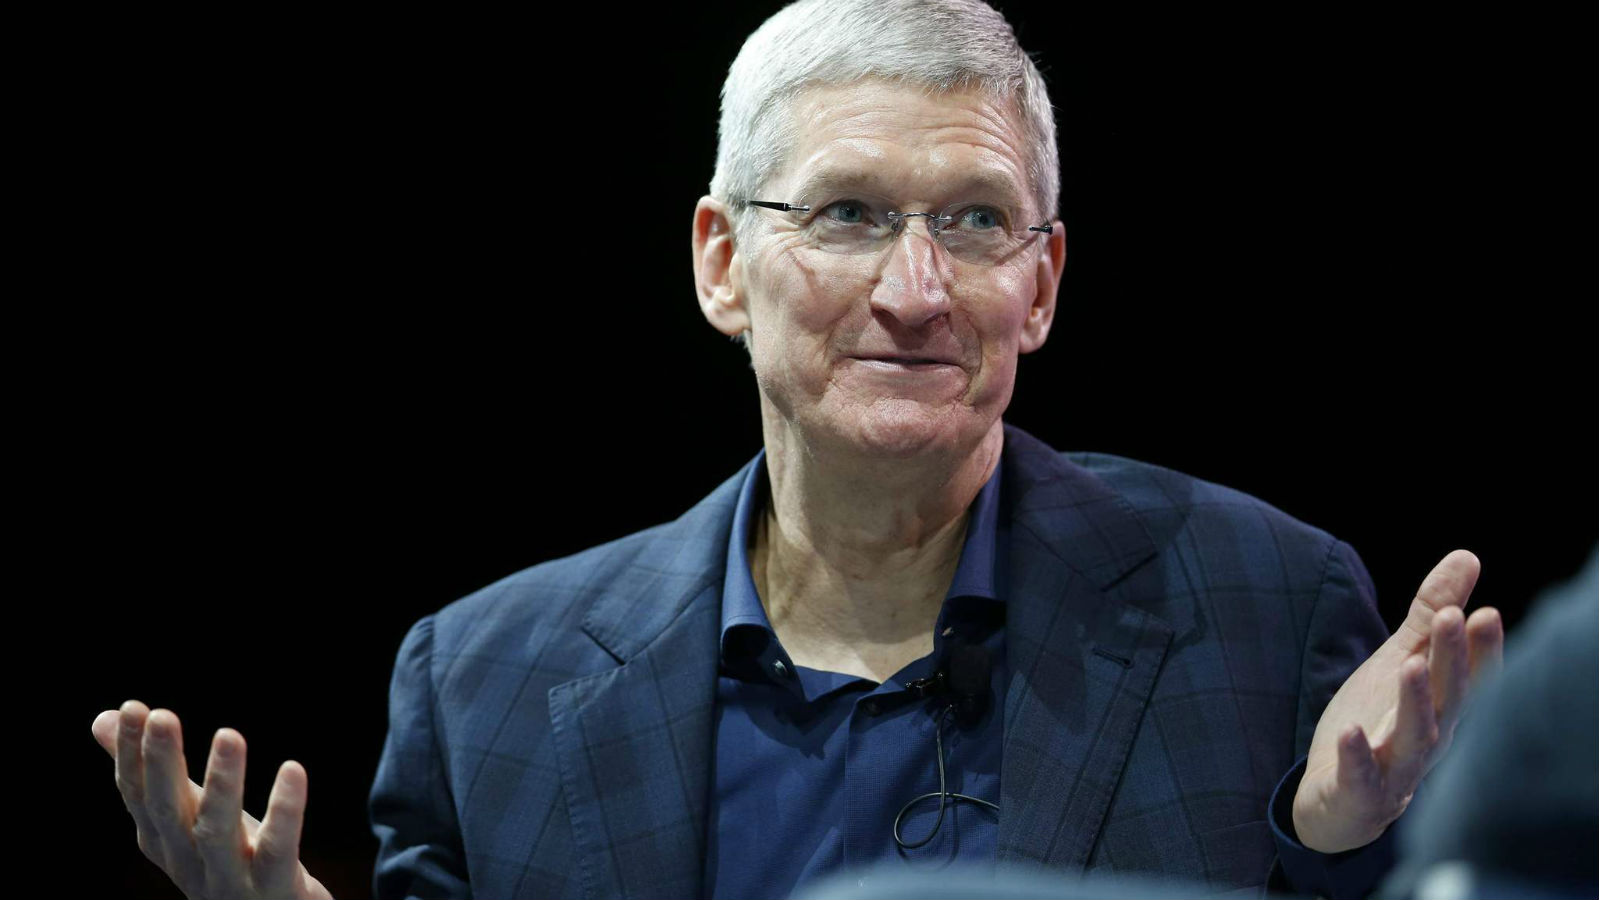 Tim cook confirmed the imminent decline of iPhone sales